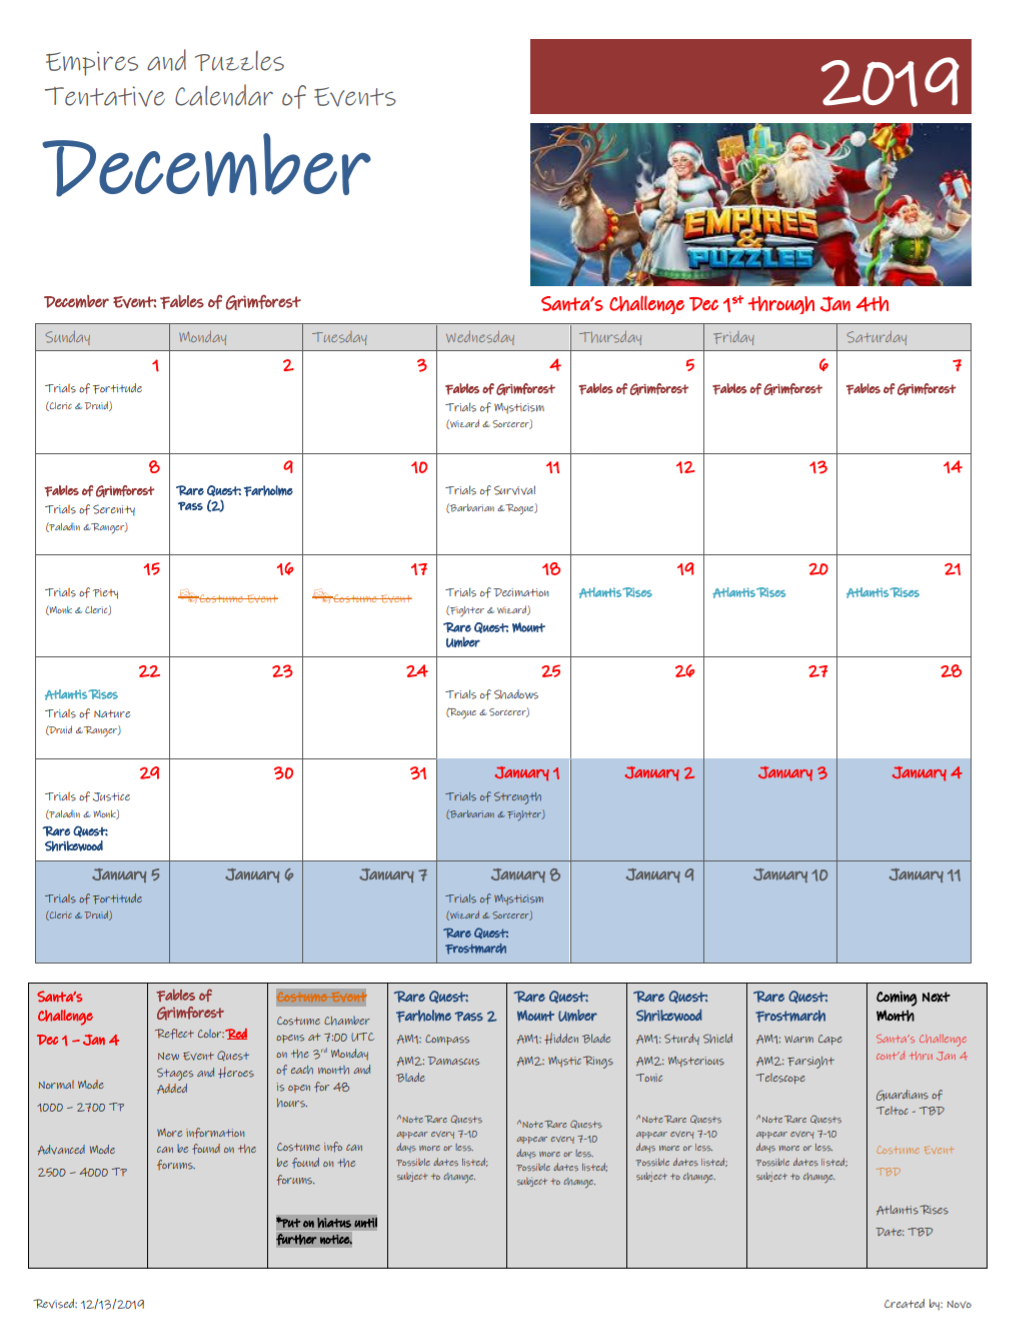 12132019 Revised Calendar In Lieu Of Recent Announcements within Calendar Empires And Puzzles